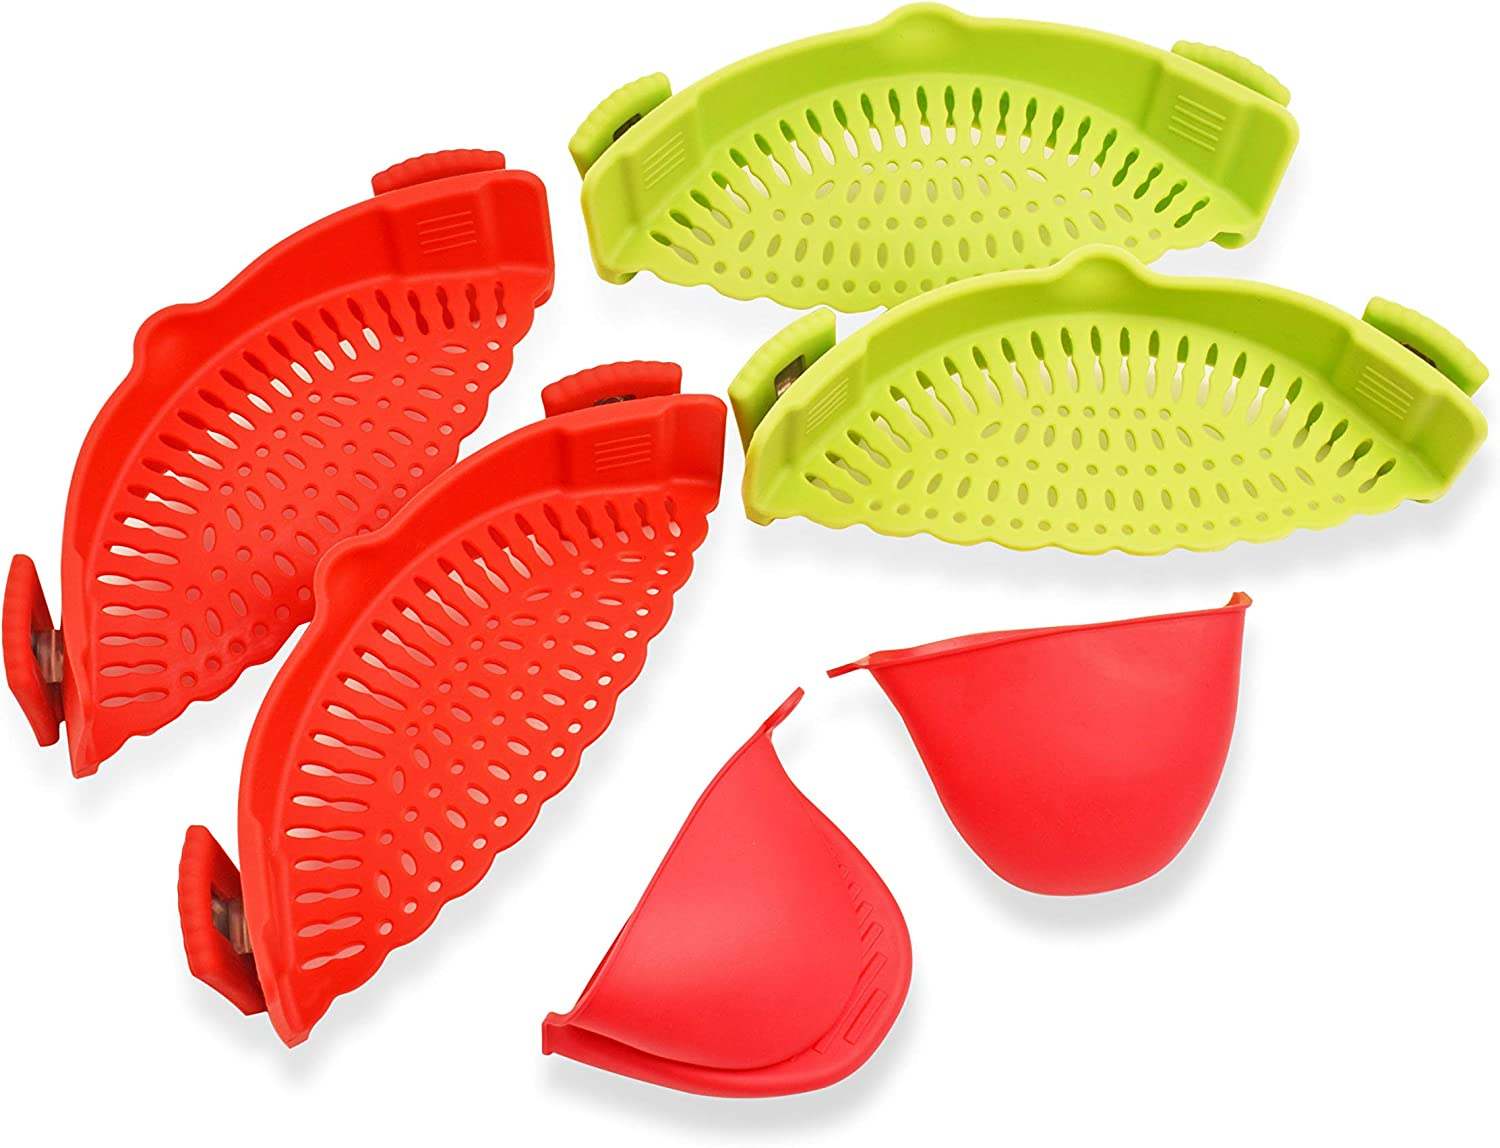 BUI - Silicone Clip on Strainer -Pack of 4 Universal Heat Resistant Food Grade Snap N Strain Kitchen Colanders - Easy to Use Adjustable Hands Free Drainer - Complete with 2 Silicone Oven Gloves Set.